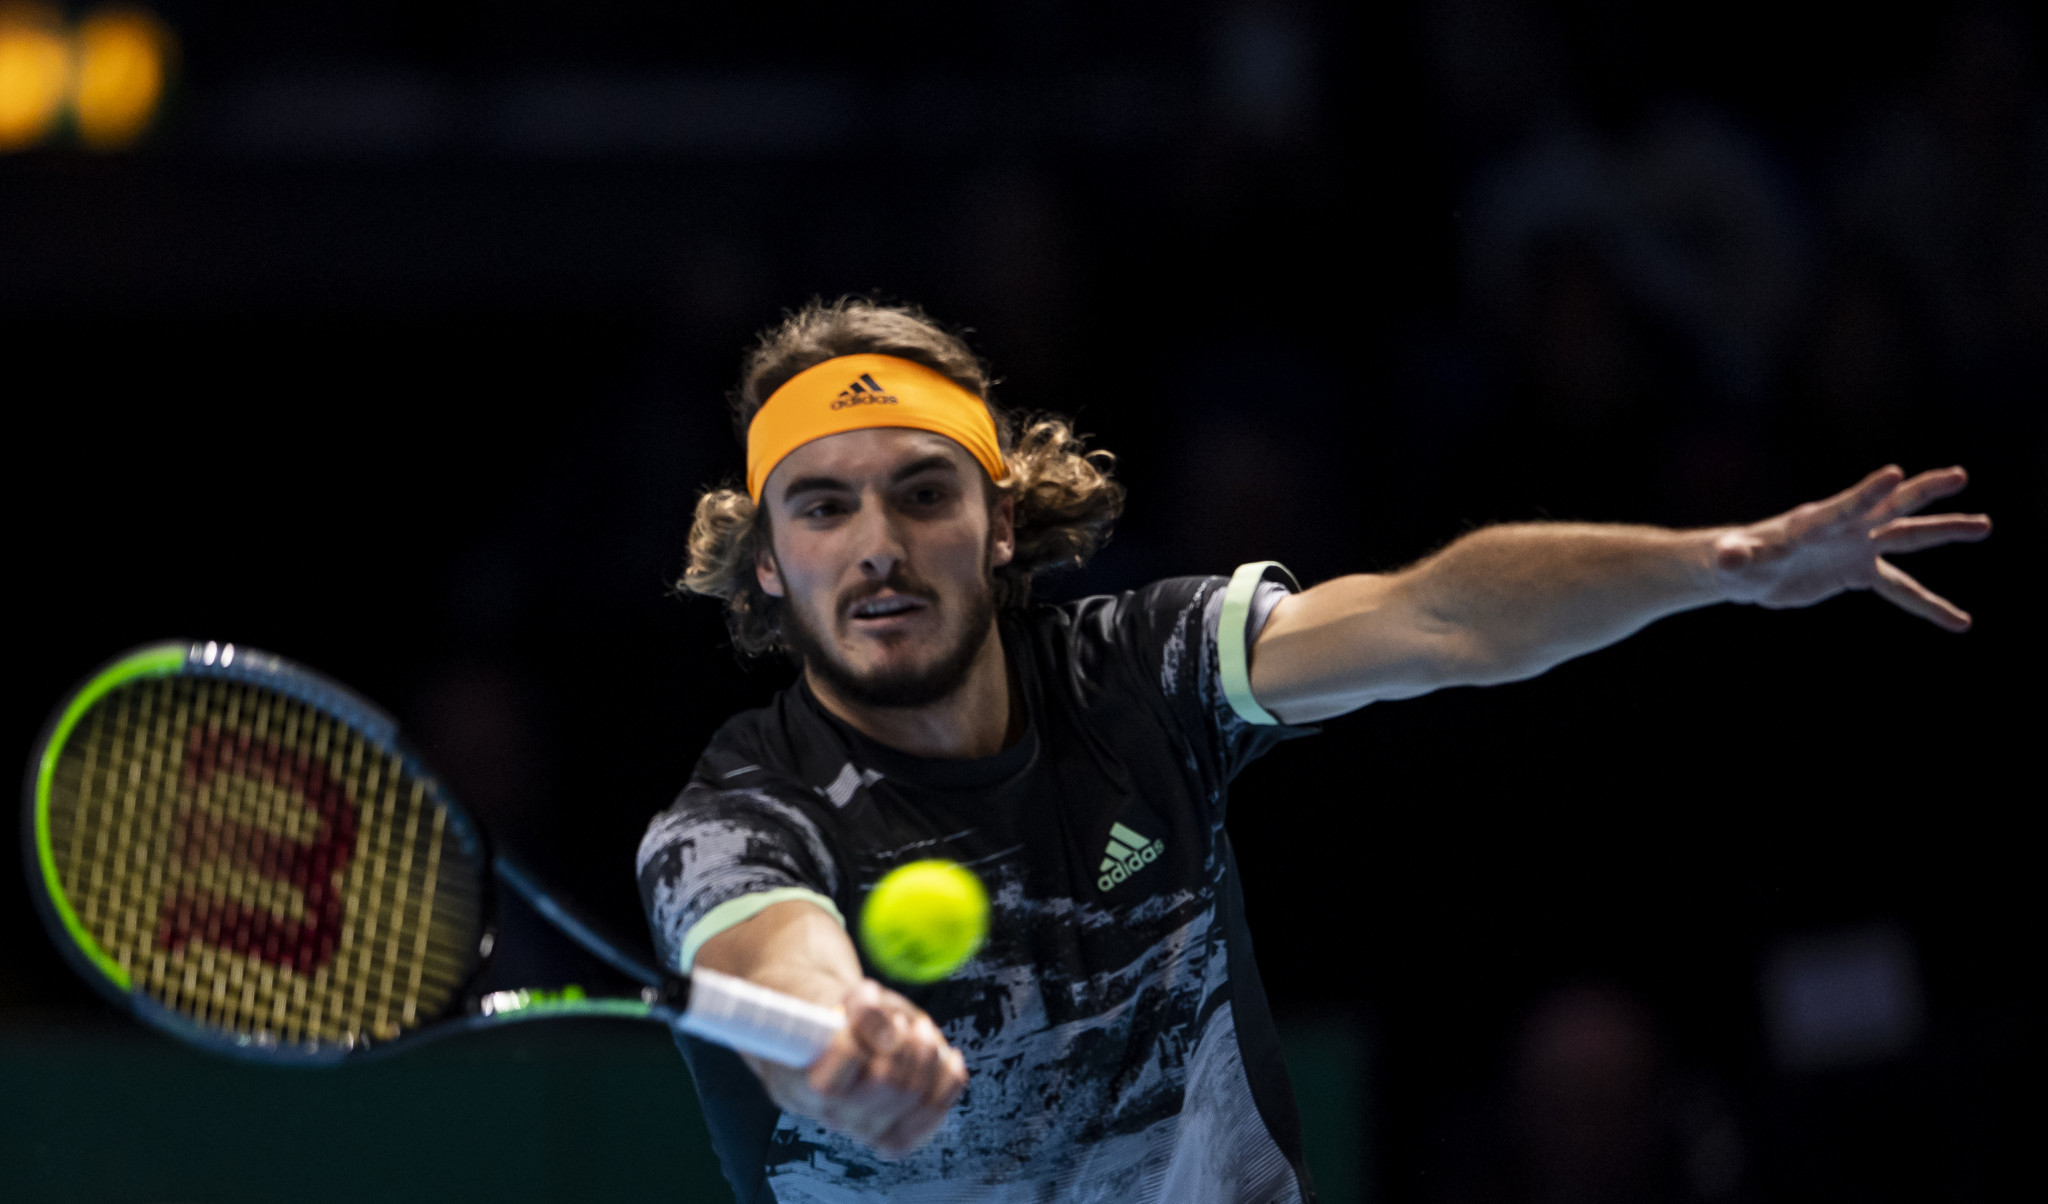 Tsitsipas clinches ATP Finals title at first attempt with comeback win over Thiem